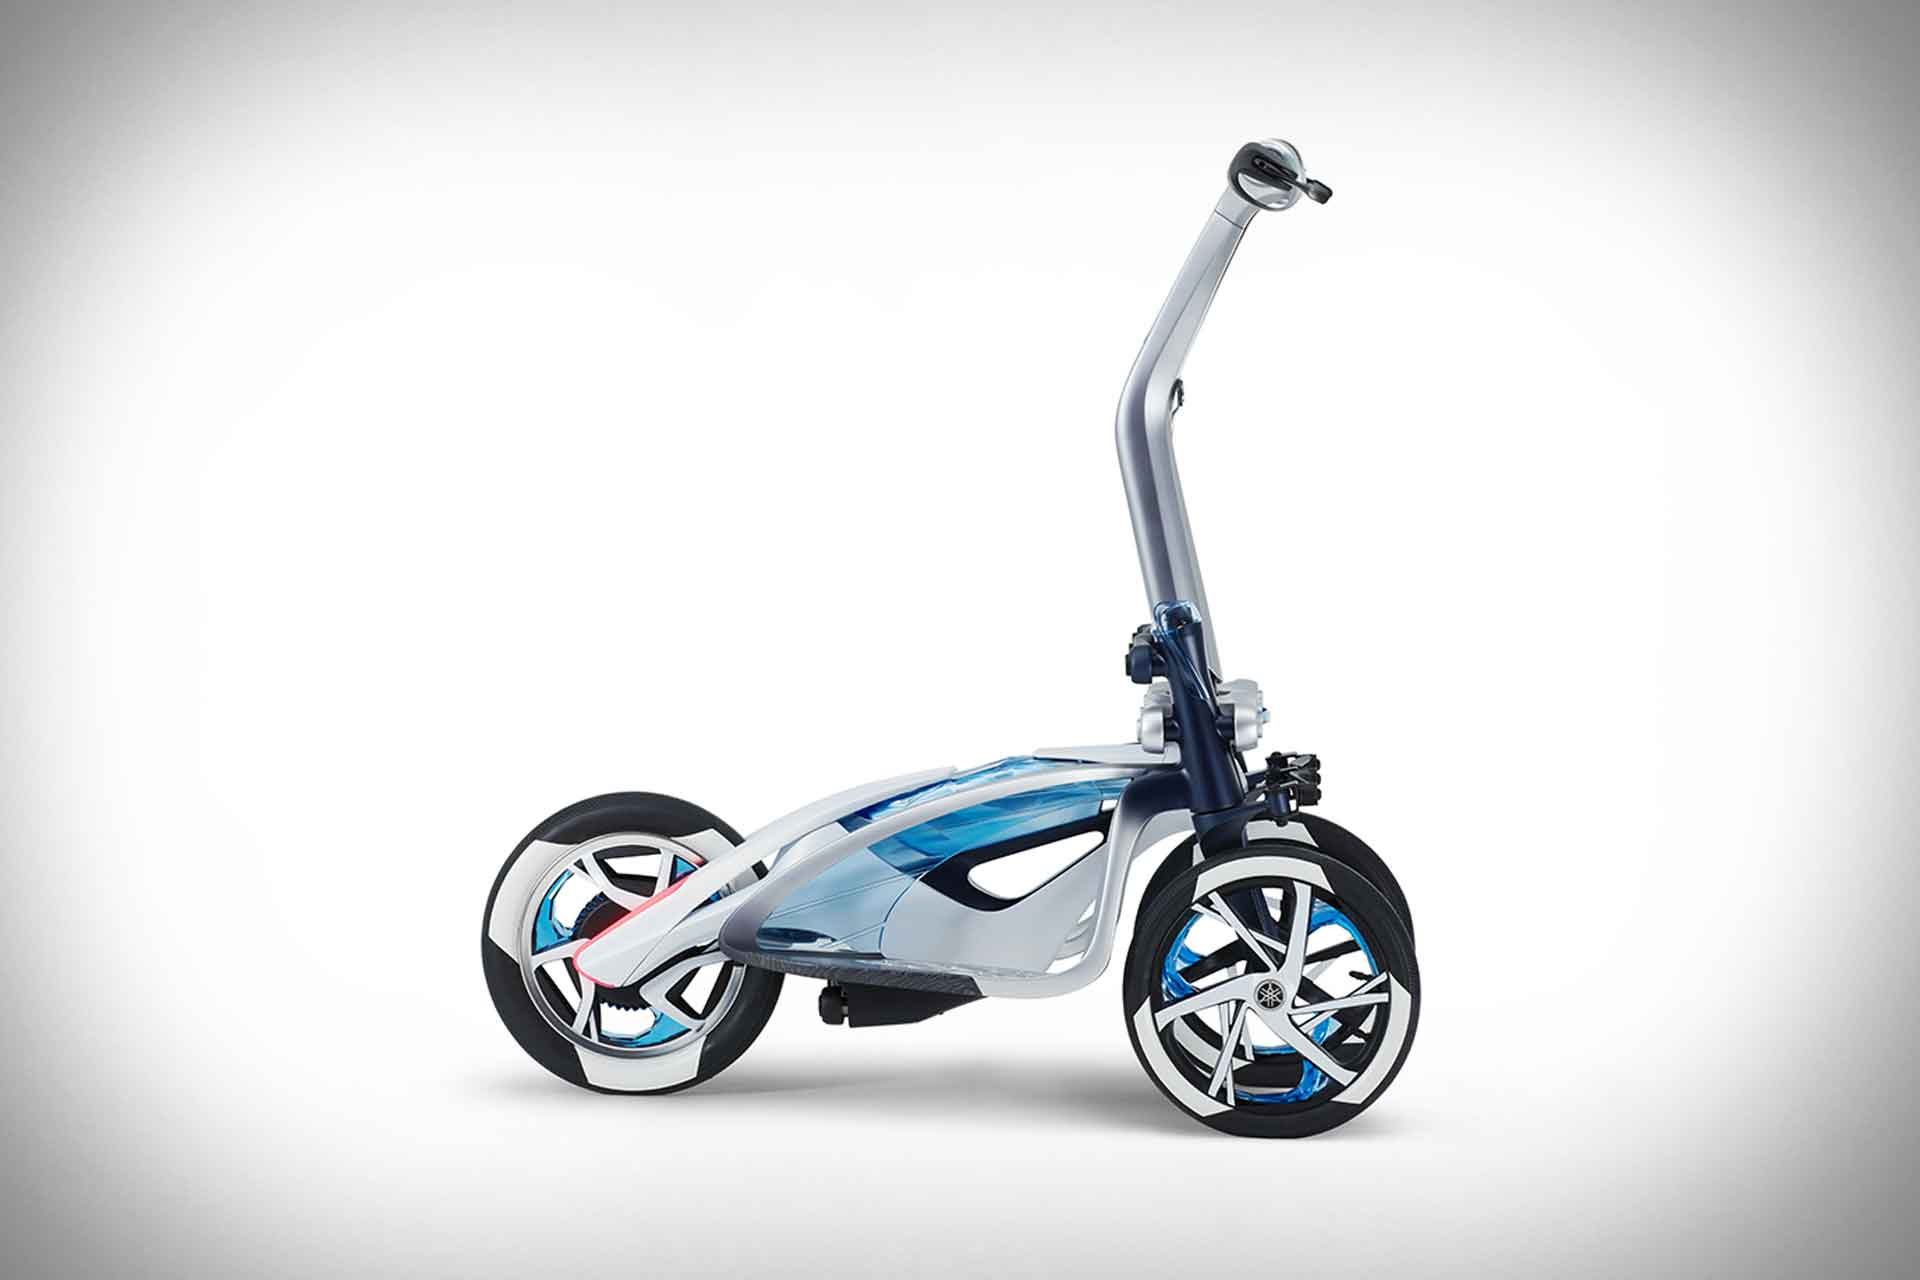 Yamaha Tritown Concept Scooter